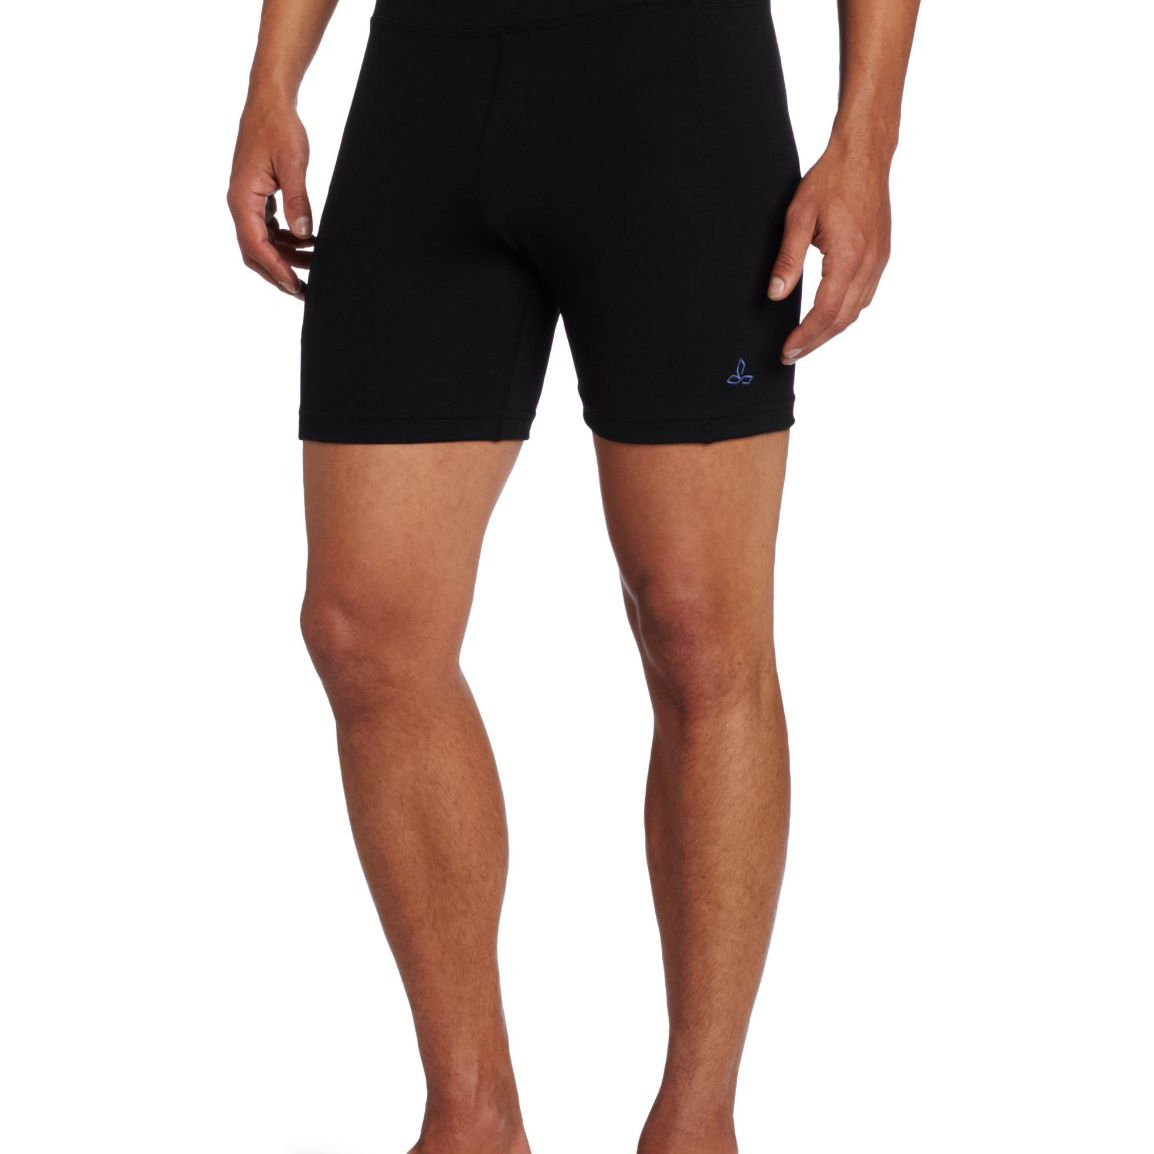 bce2549dc1 The 5 Best Yoga Shorts for Men of 2019